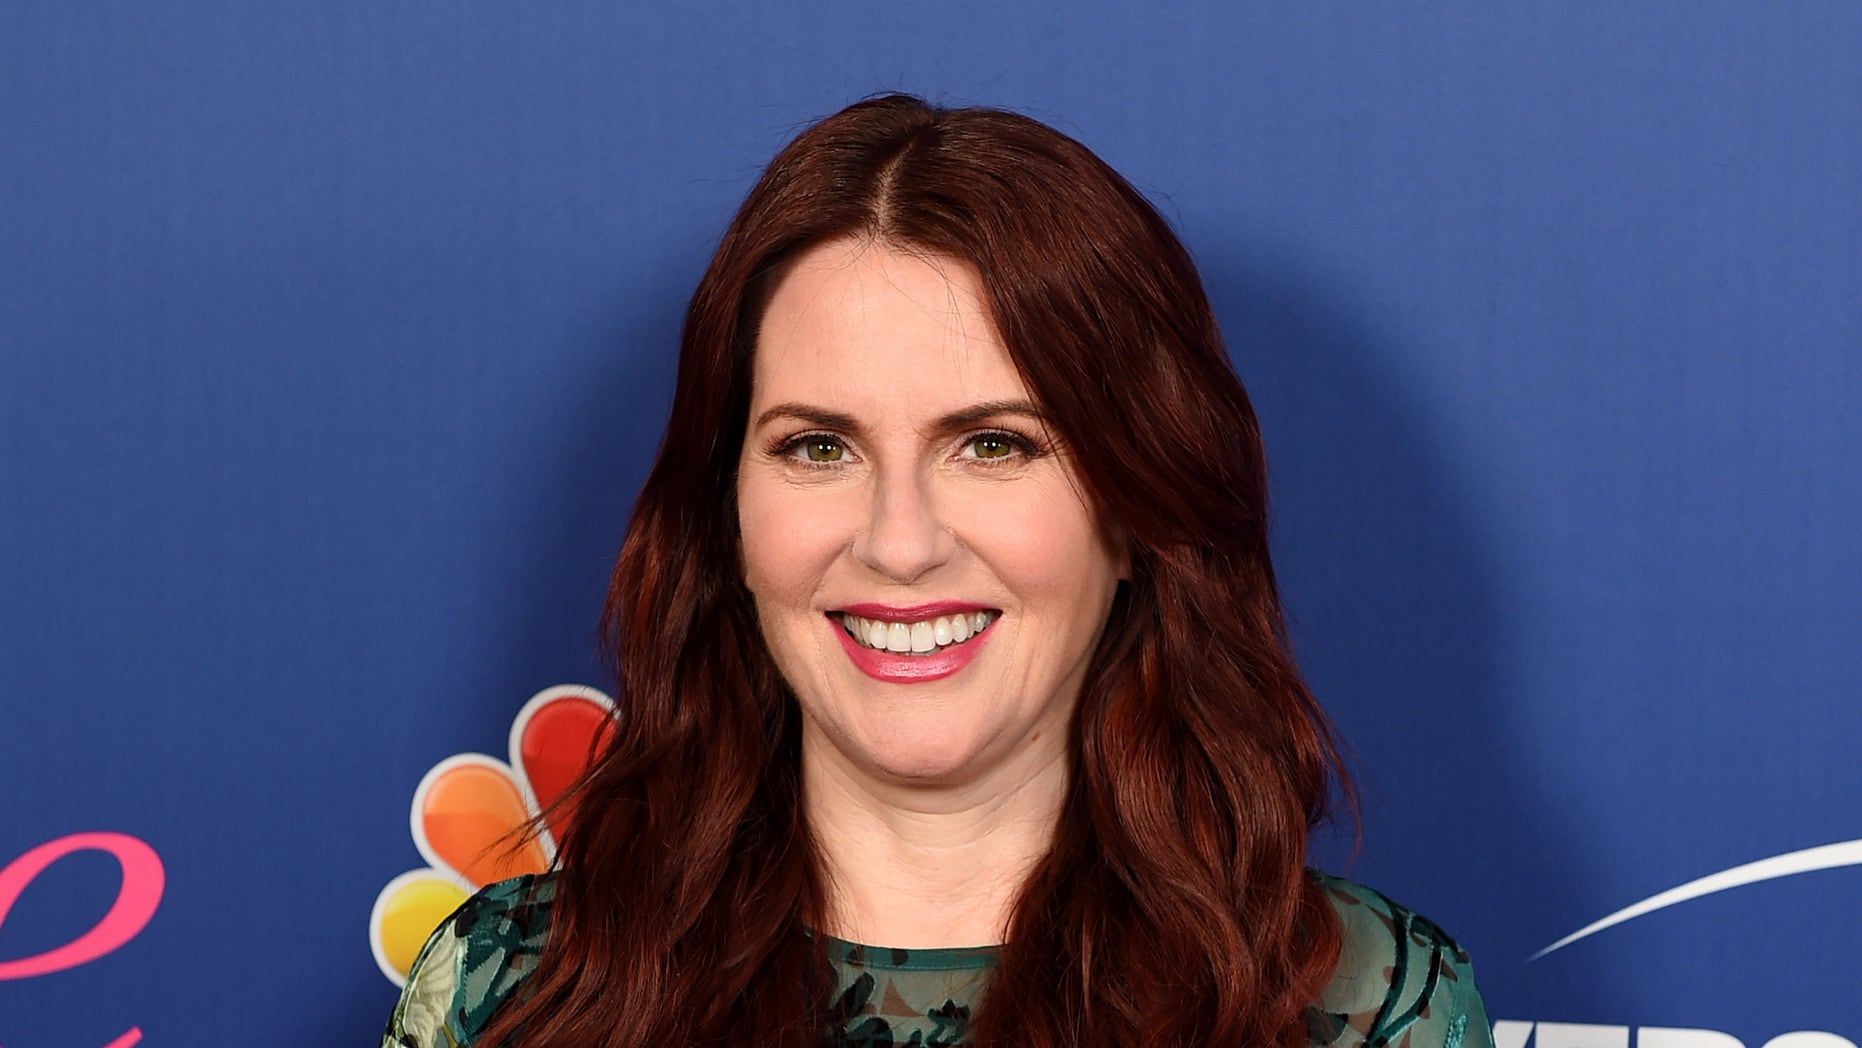 Meghan Mullally says she's going to do zero political humor at the SAG Awards.